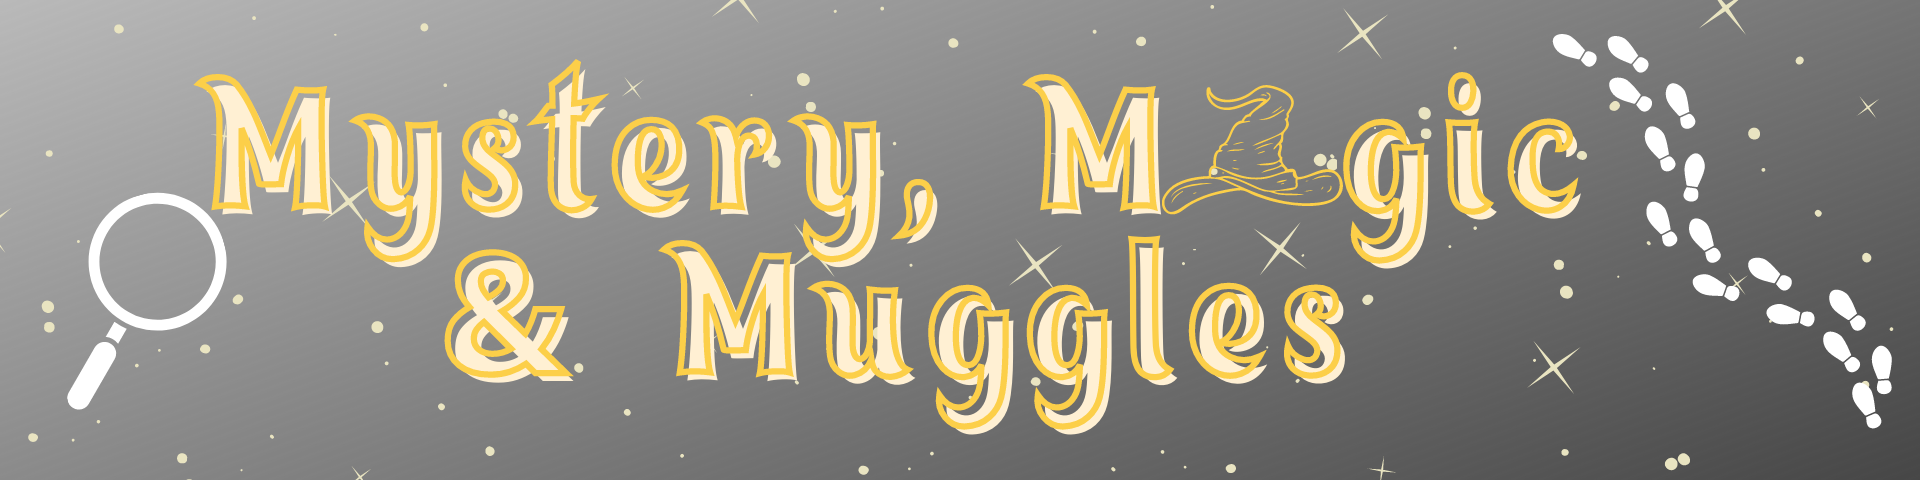 Mystery, Magic, and Muggles